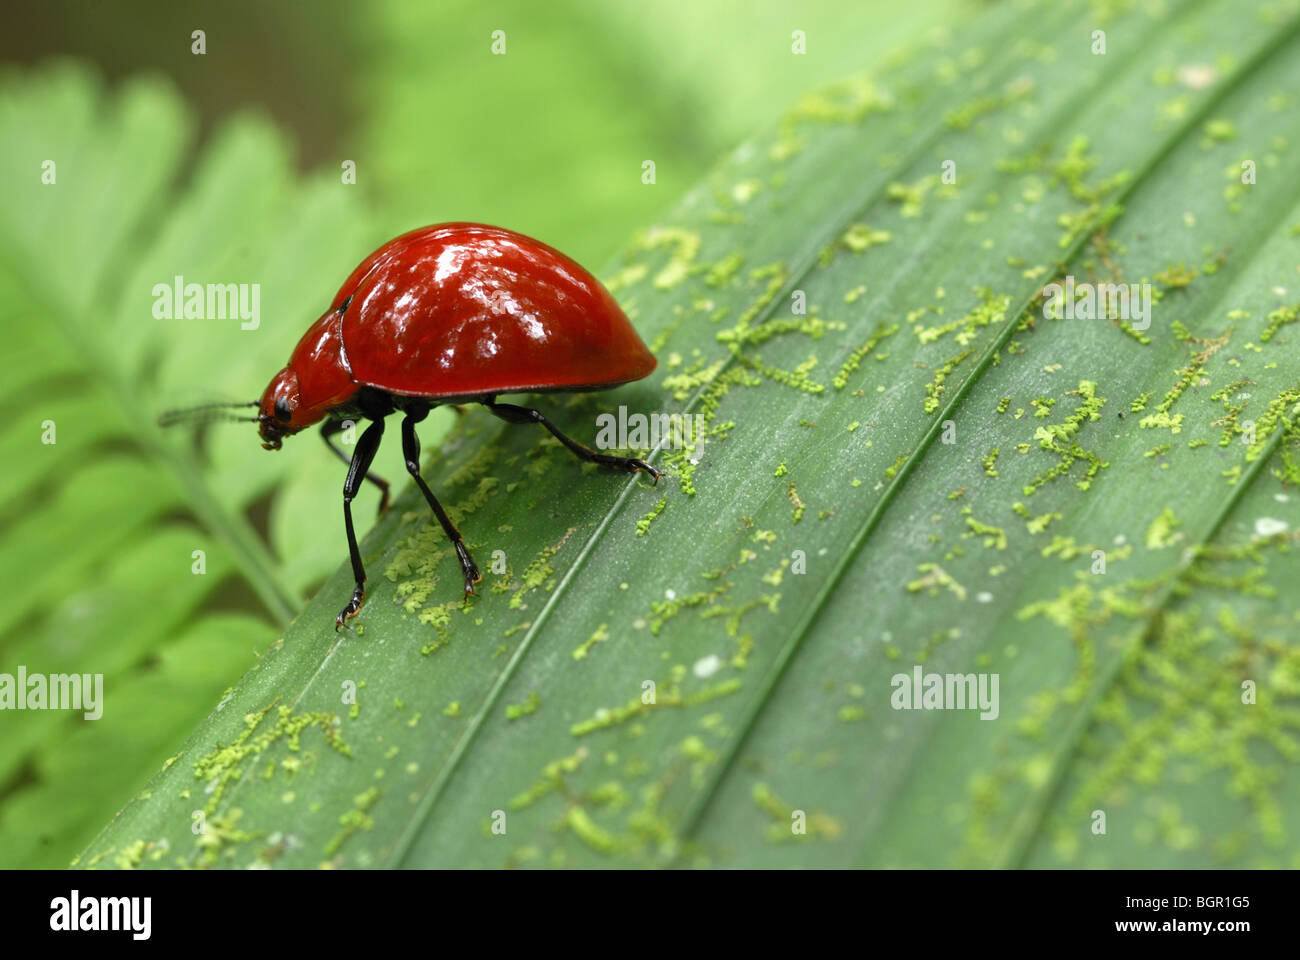 Red Leaf Beetle, adult on leaf, Braulio Carrillo National Park, Costa Rica  - Stock Image